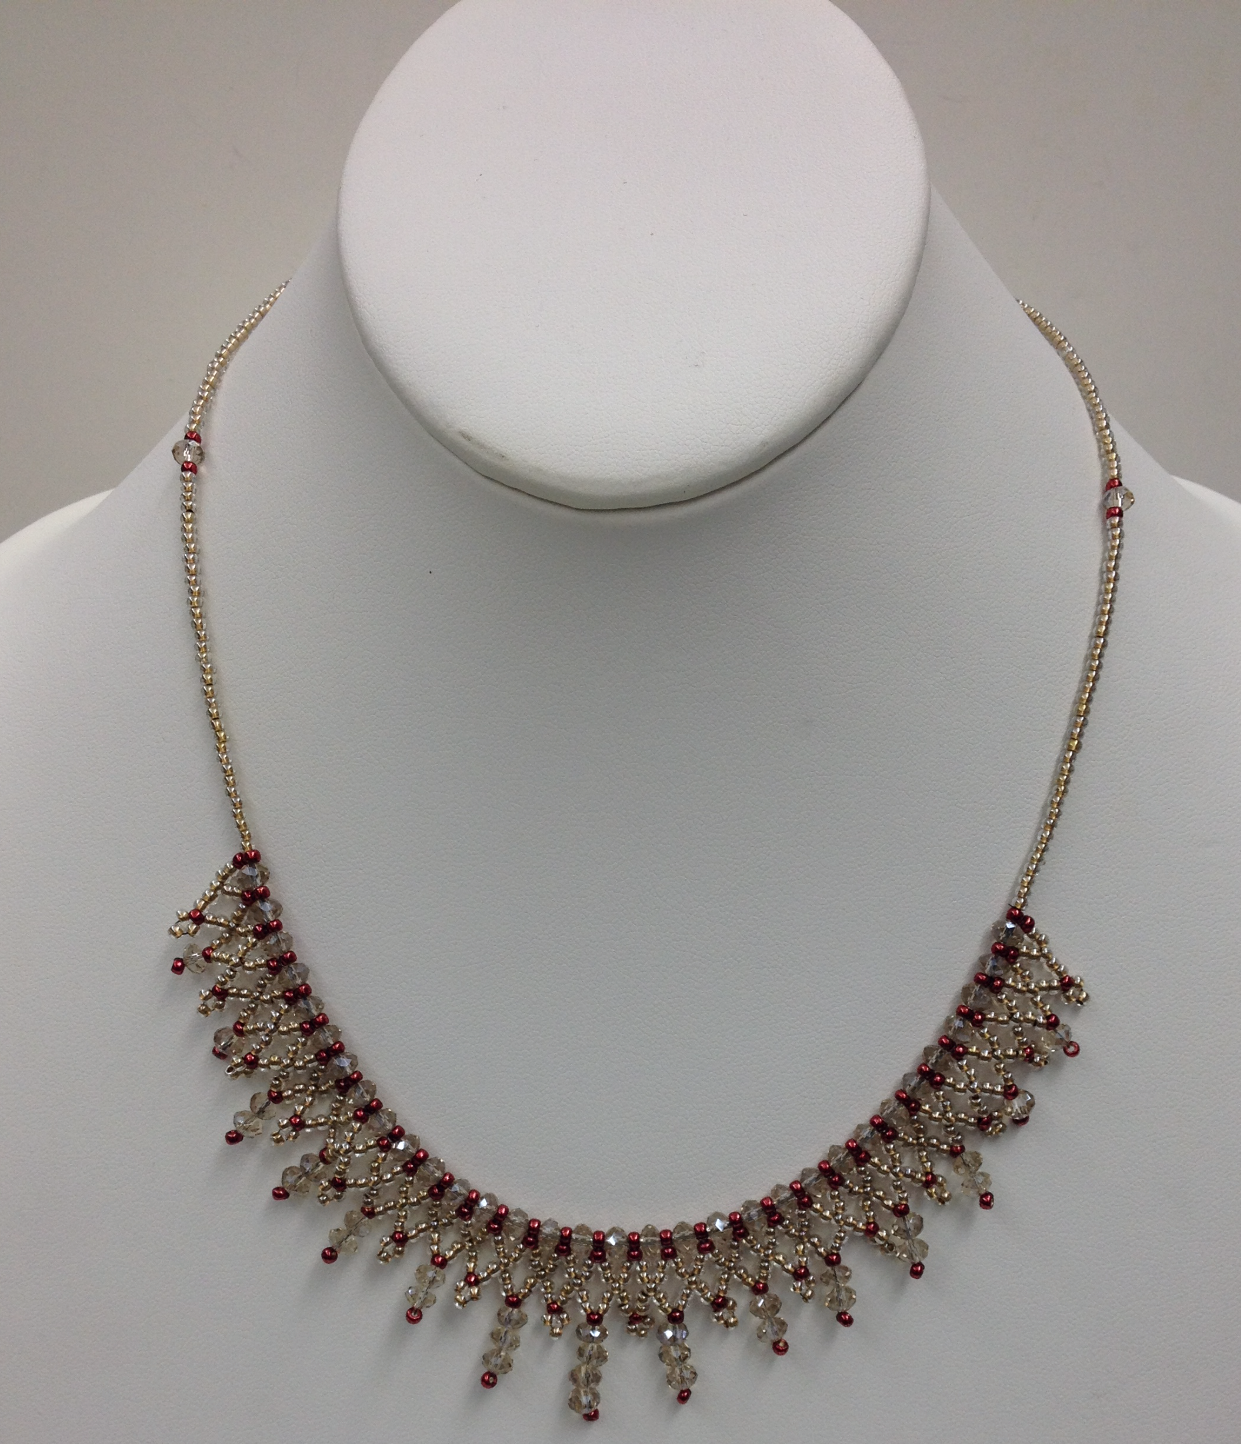 Crystal Lace Necklace in Mocha by Paula Binner